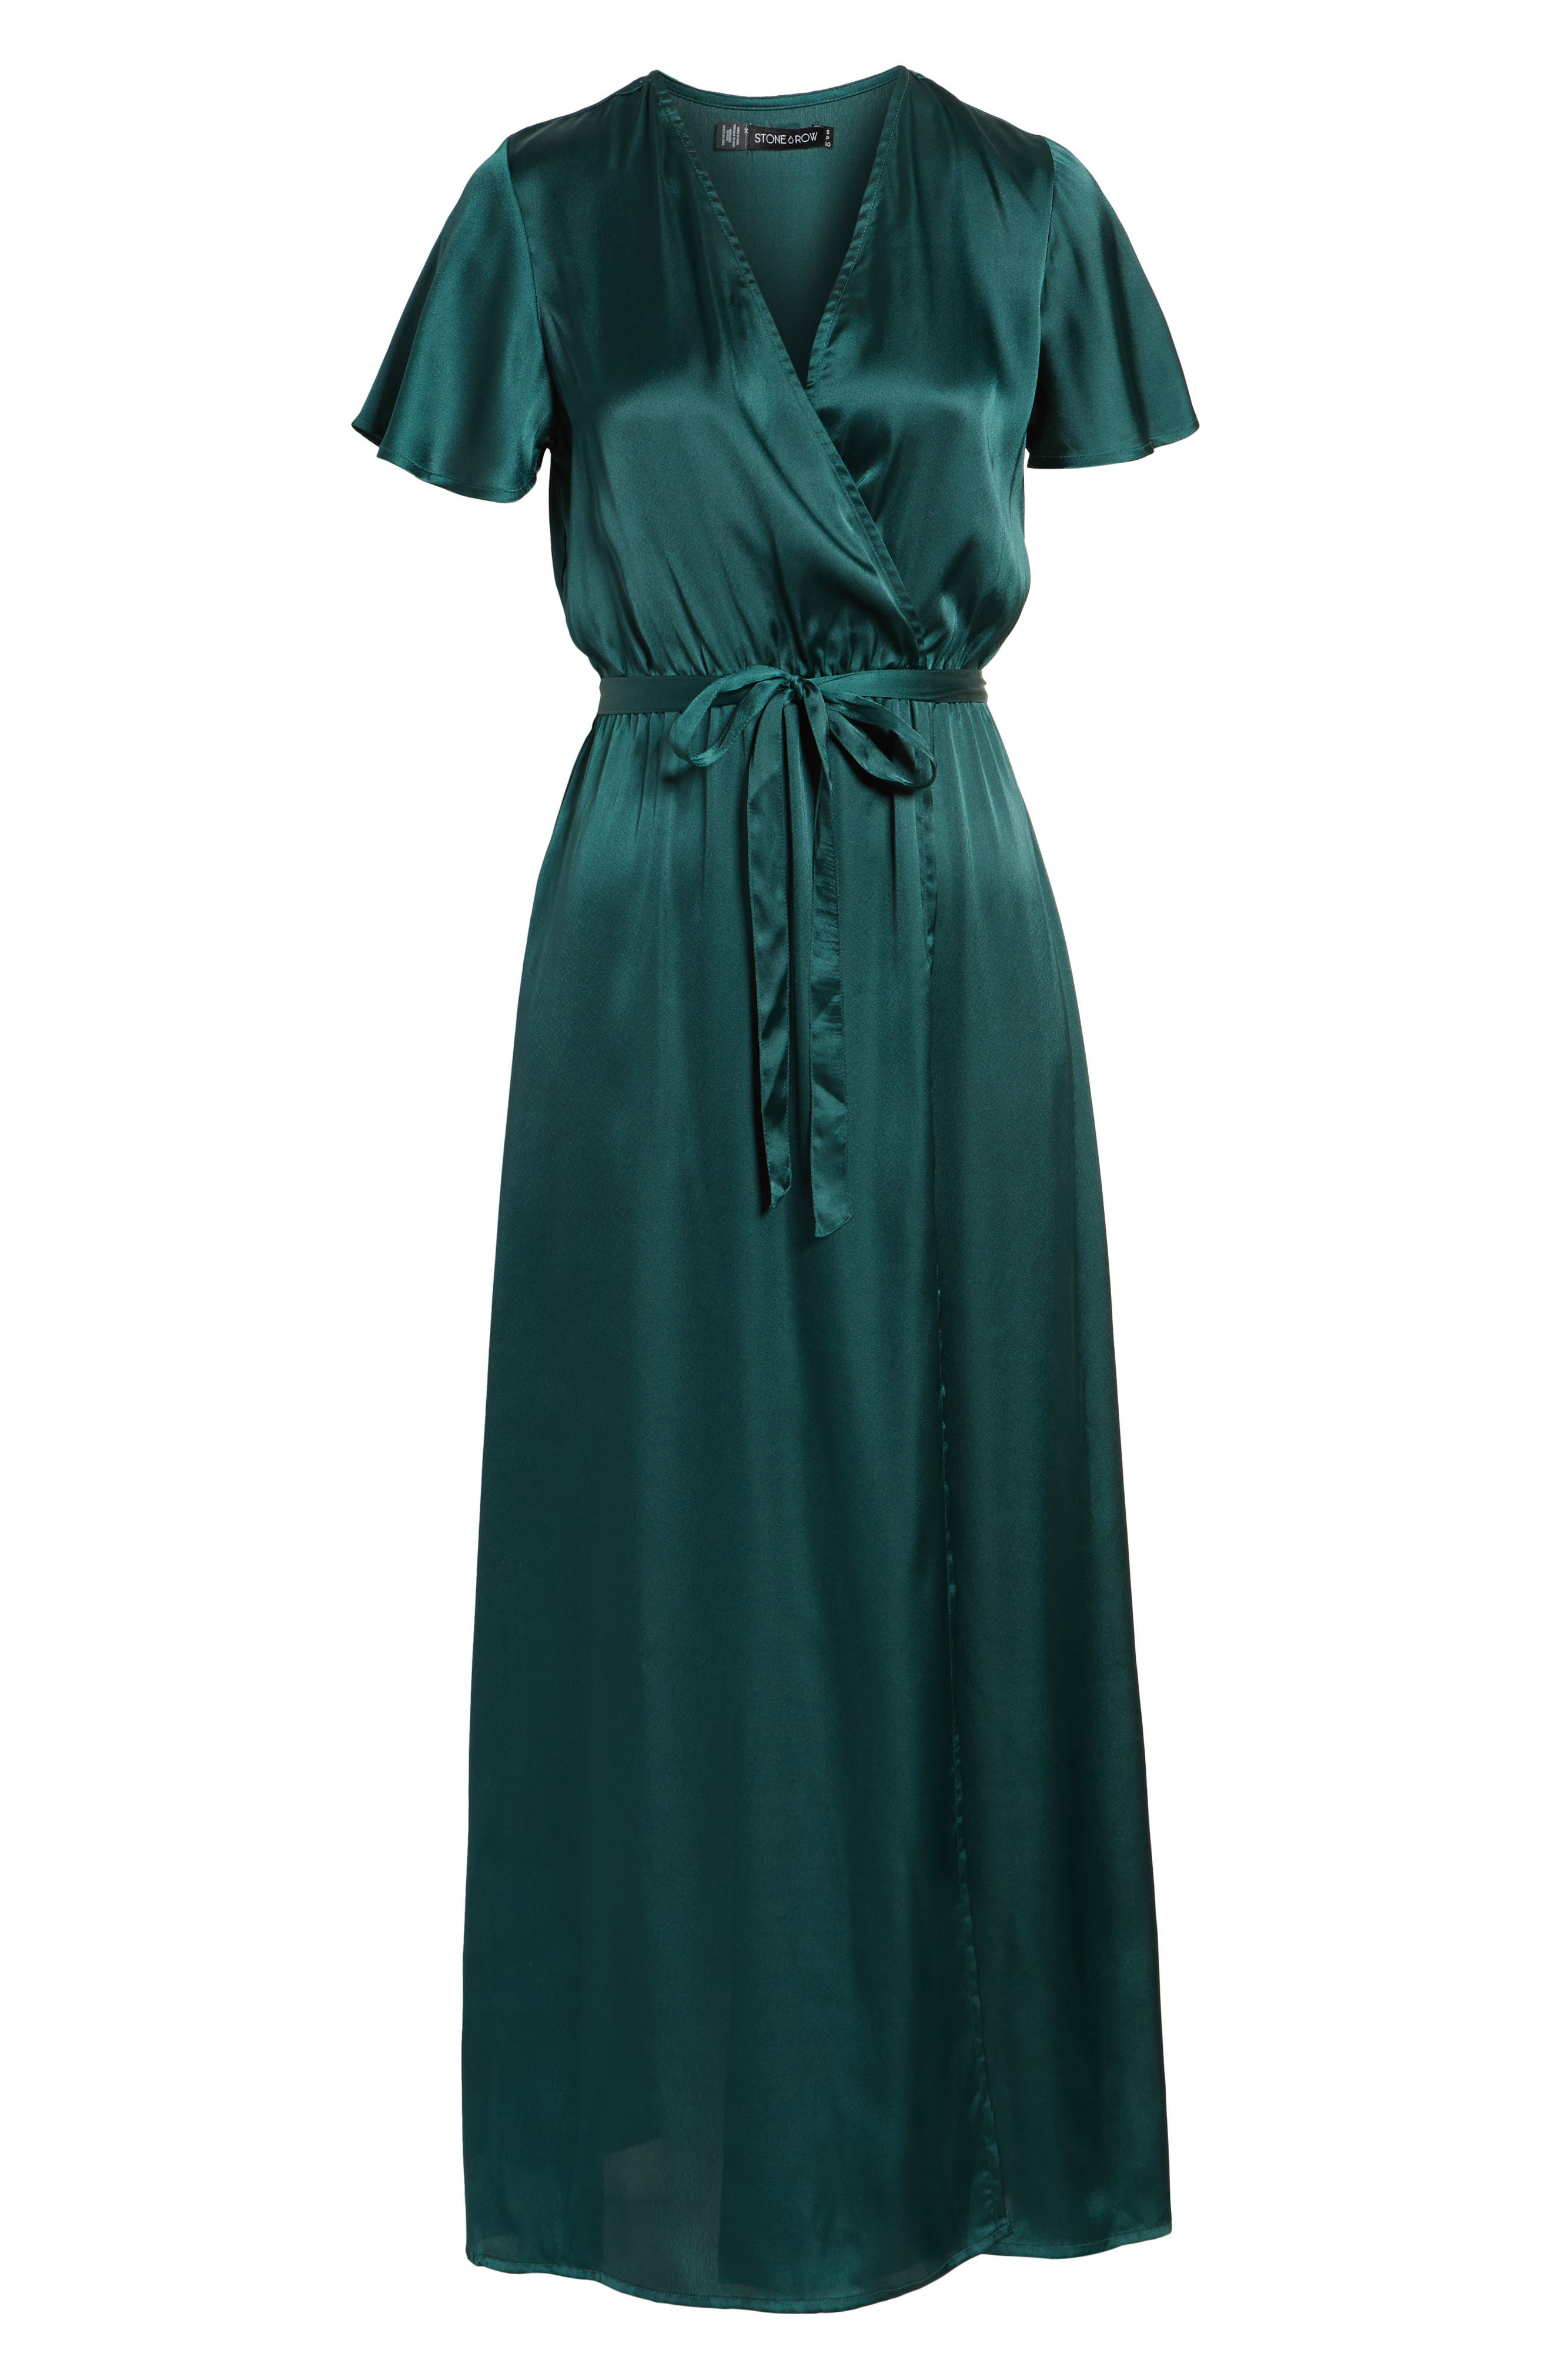 EZ Days Satin Wrap Maxi Dress,                             Alternate thumbnail 7, color,                             300